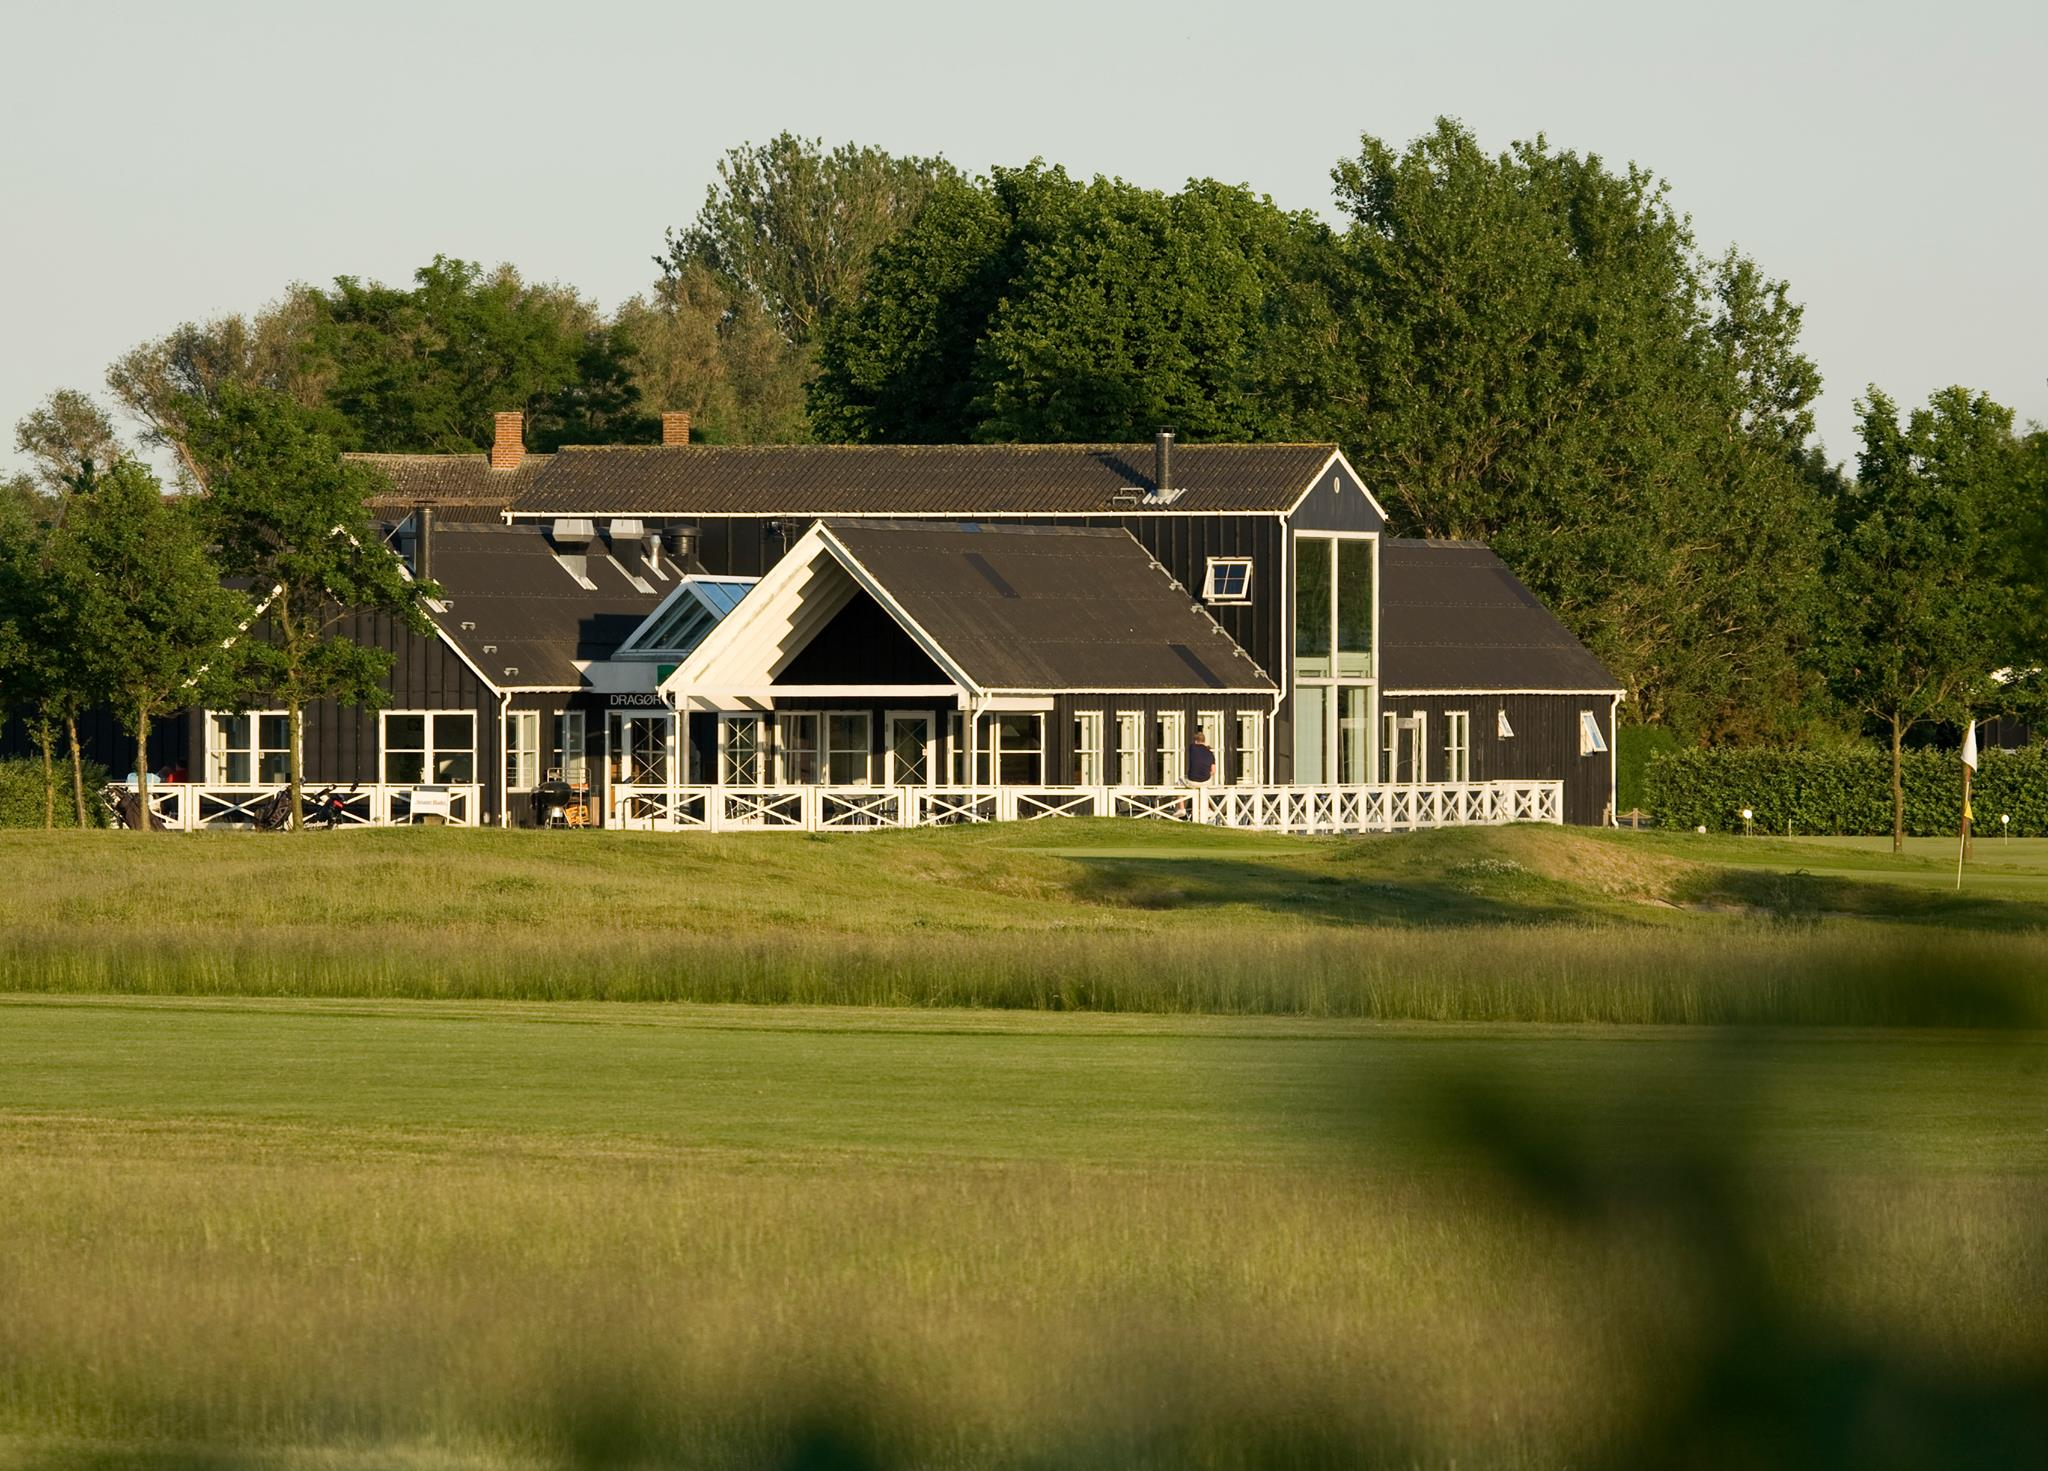 Overview of golf course named Dragoer Golf Club